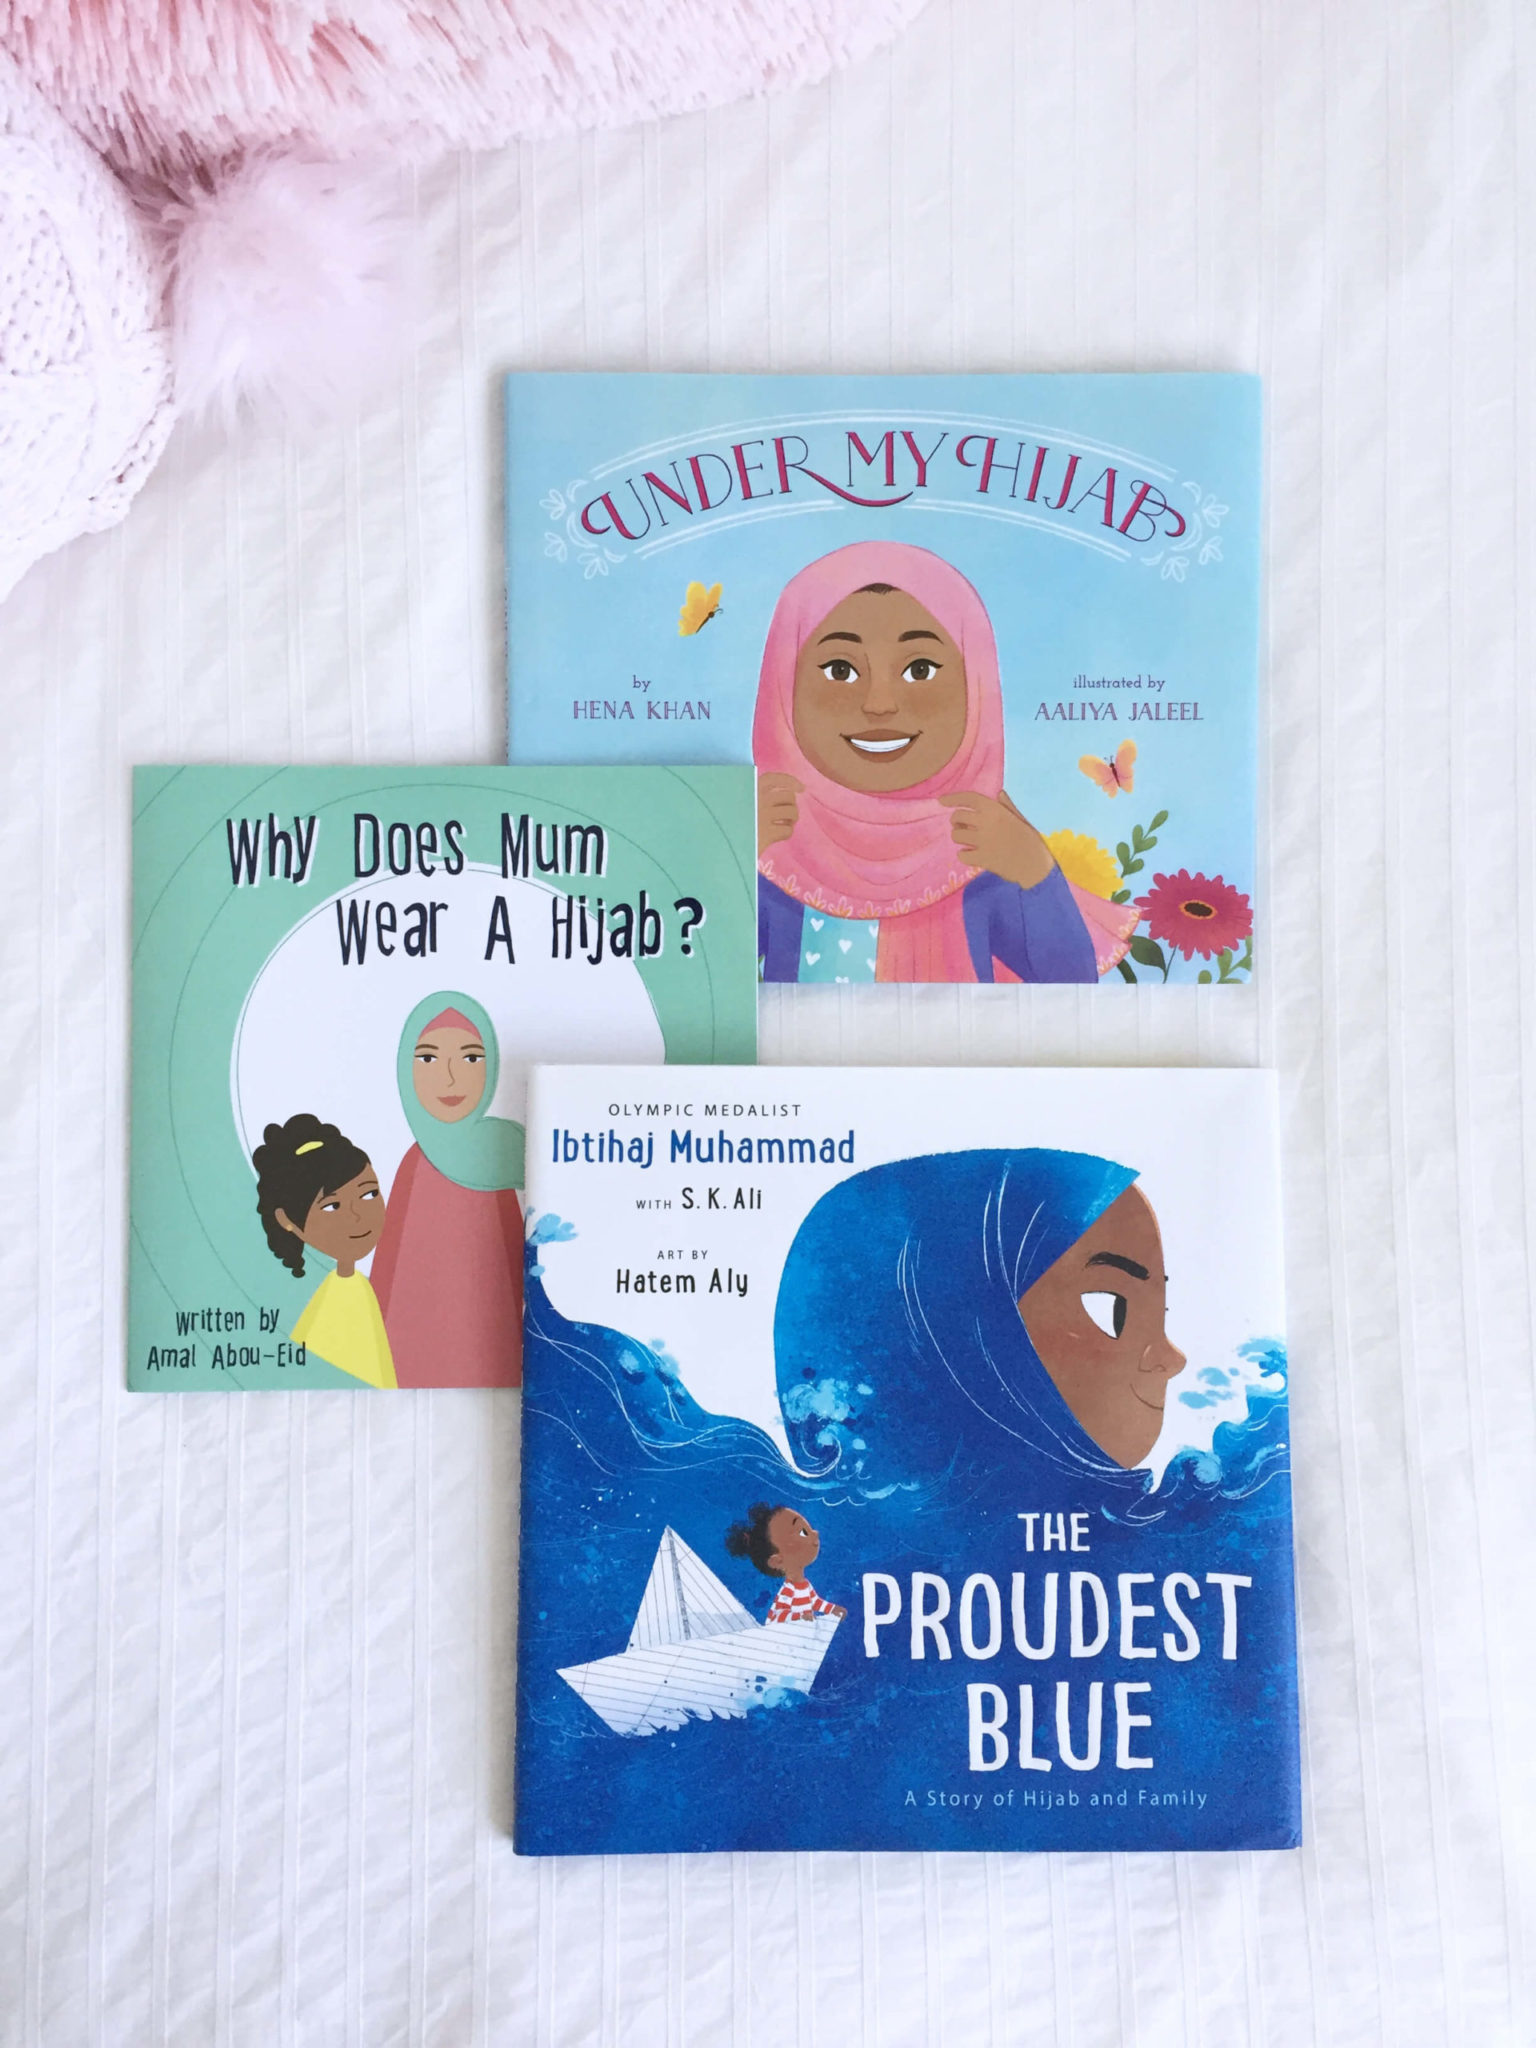 Hijab Books for kids review